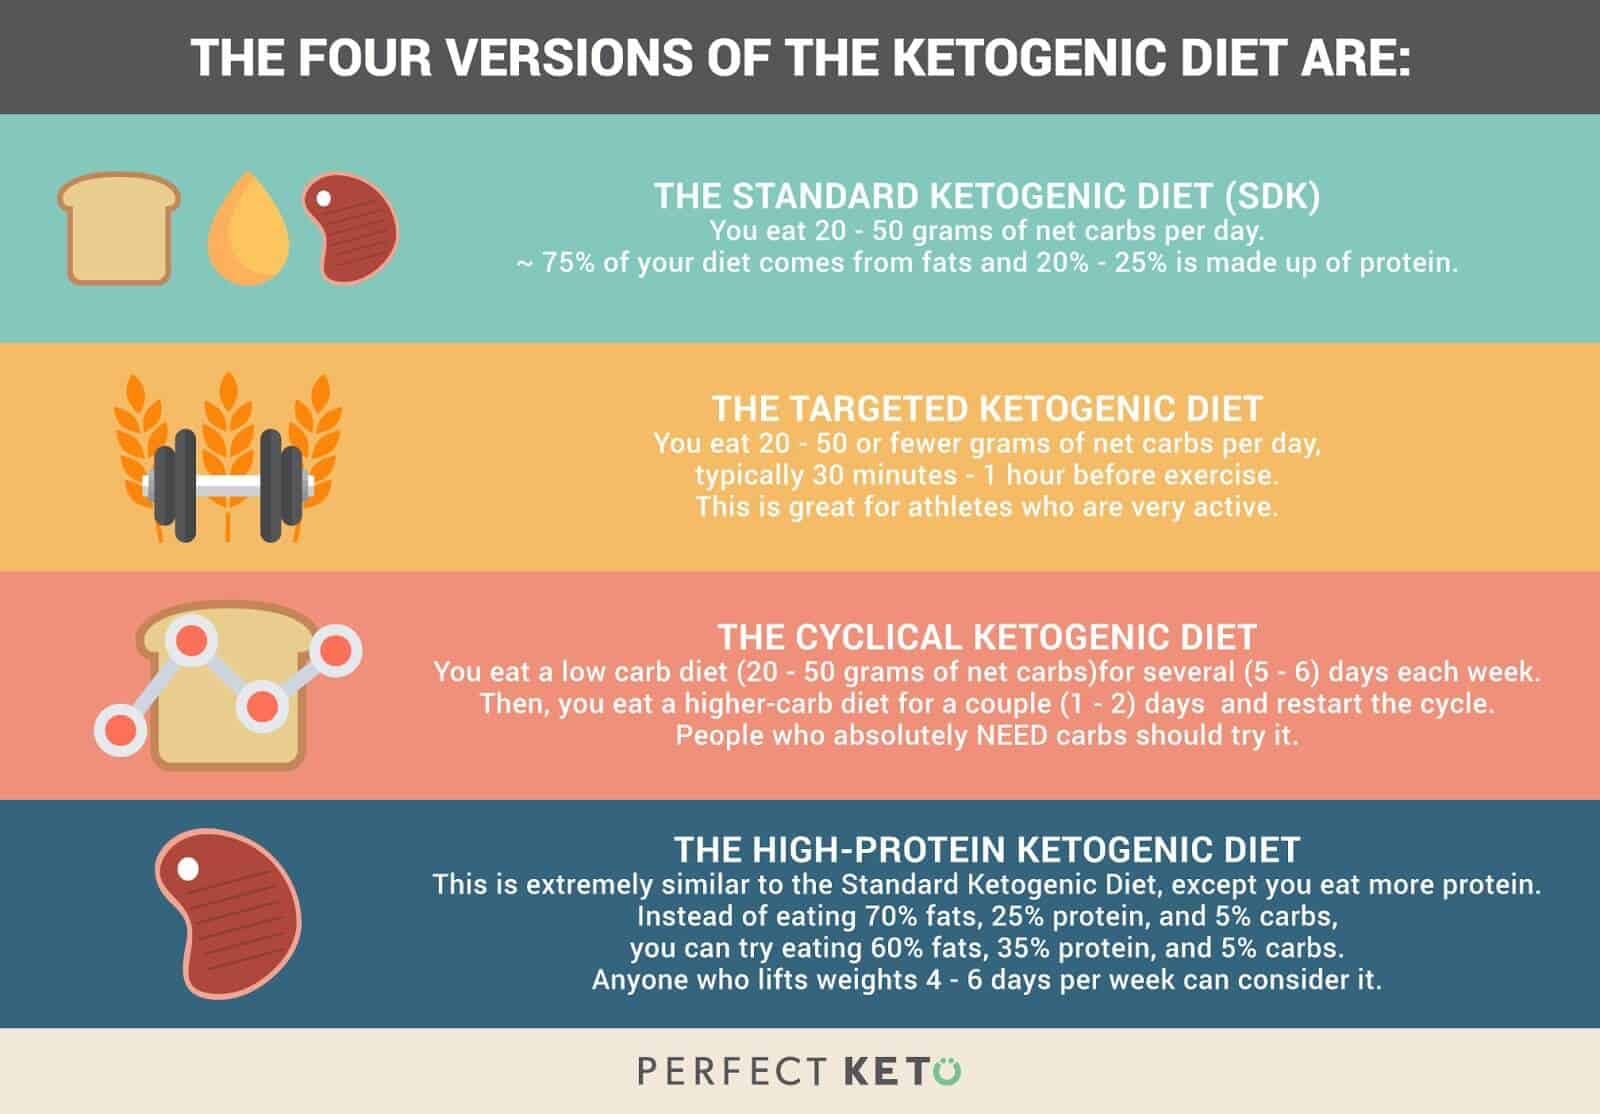 Perfect Keto Review (UPDATE: Jan 2018) | 17 Things You Need to Know